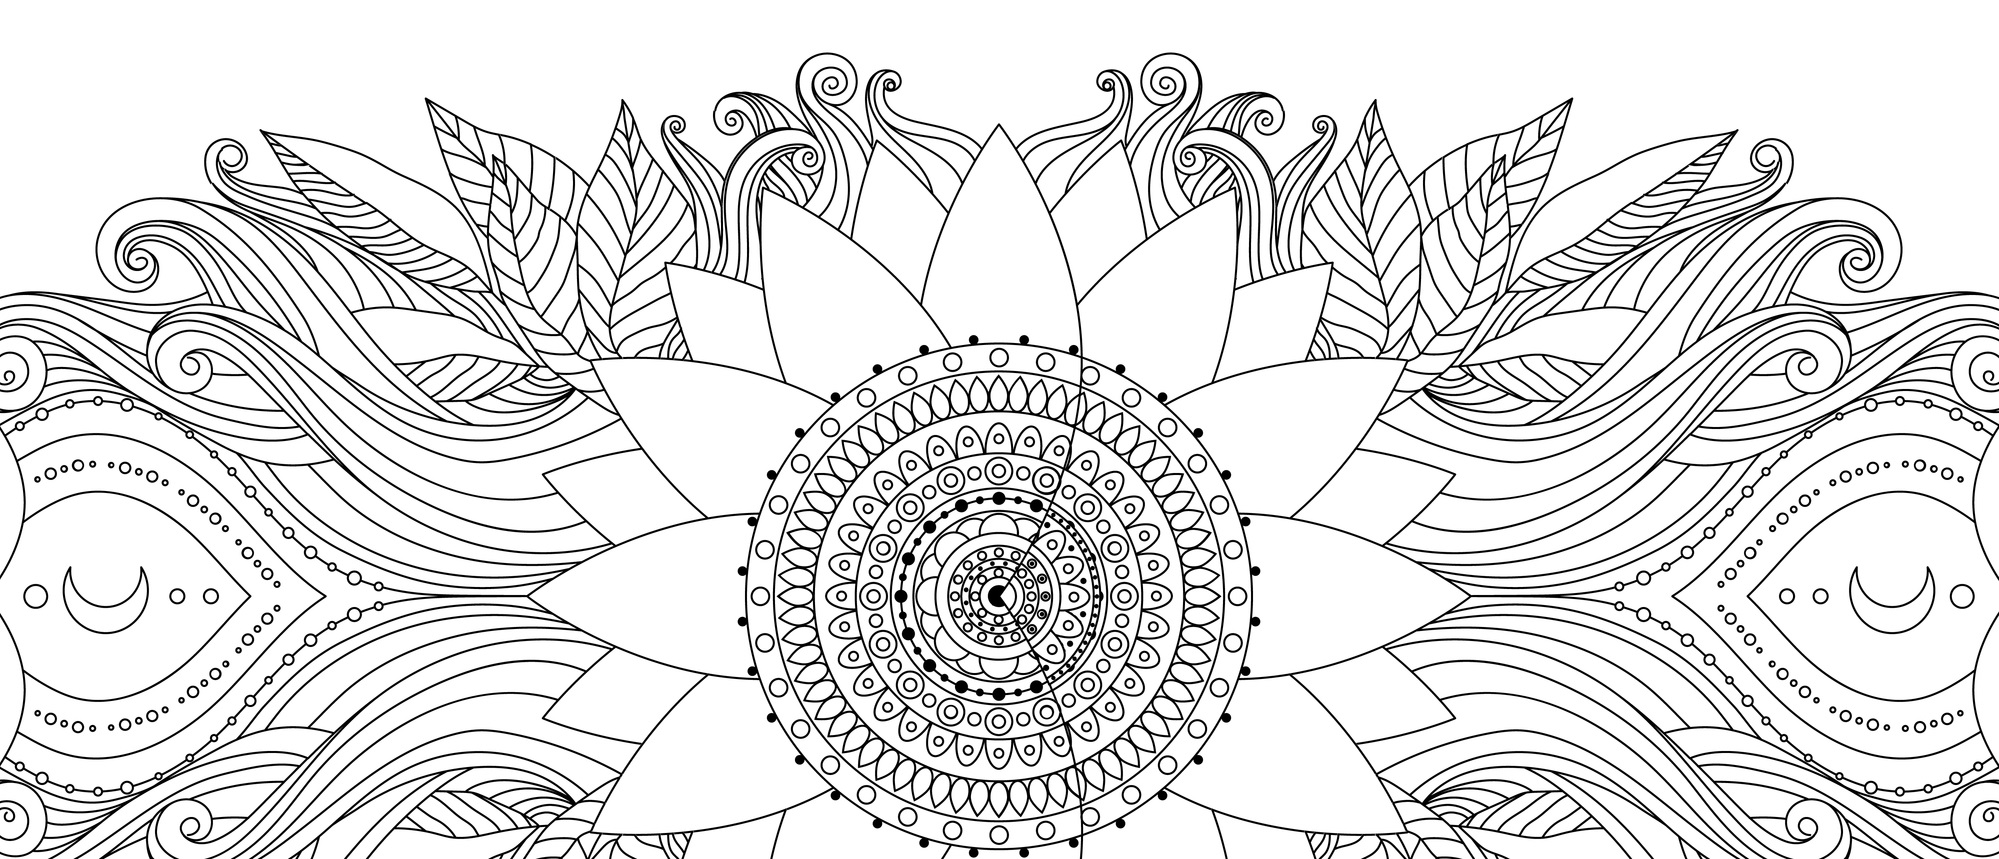 Hand drawn wavy and flower ornament. Ethnic asian boho design card, black and white illustration for coloring book, invitation, poster. Vector background.